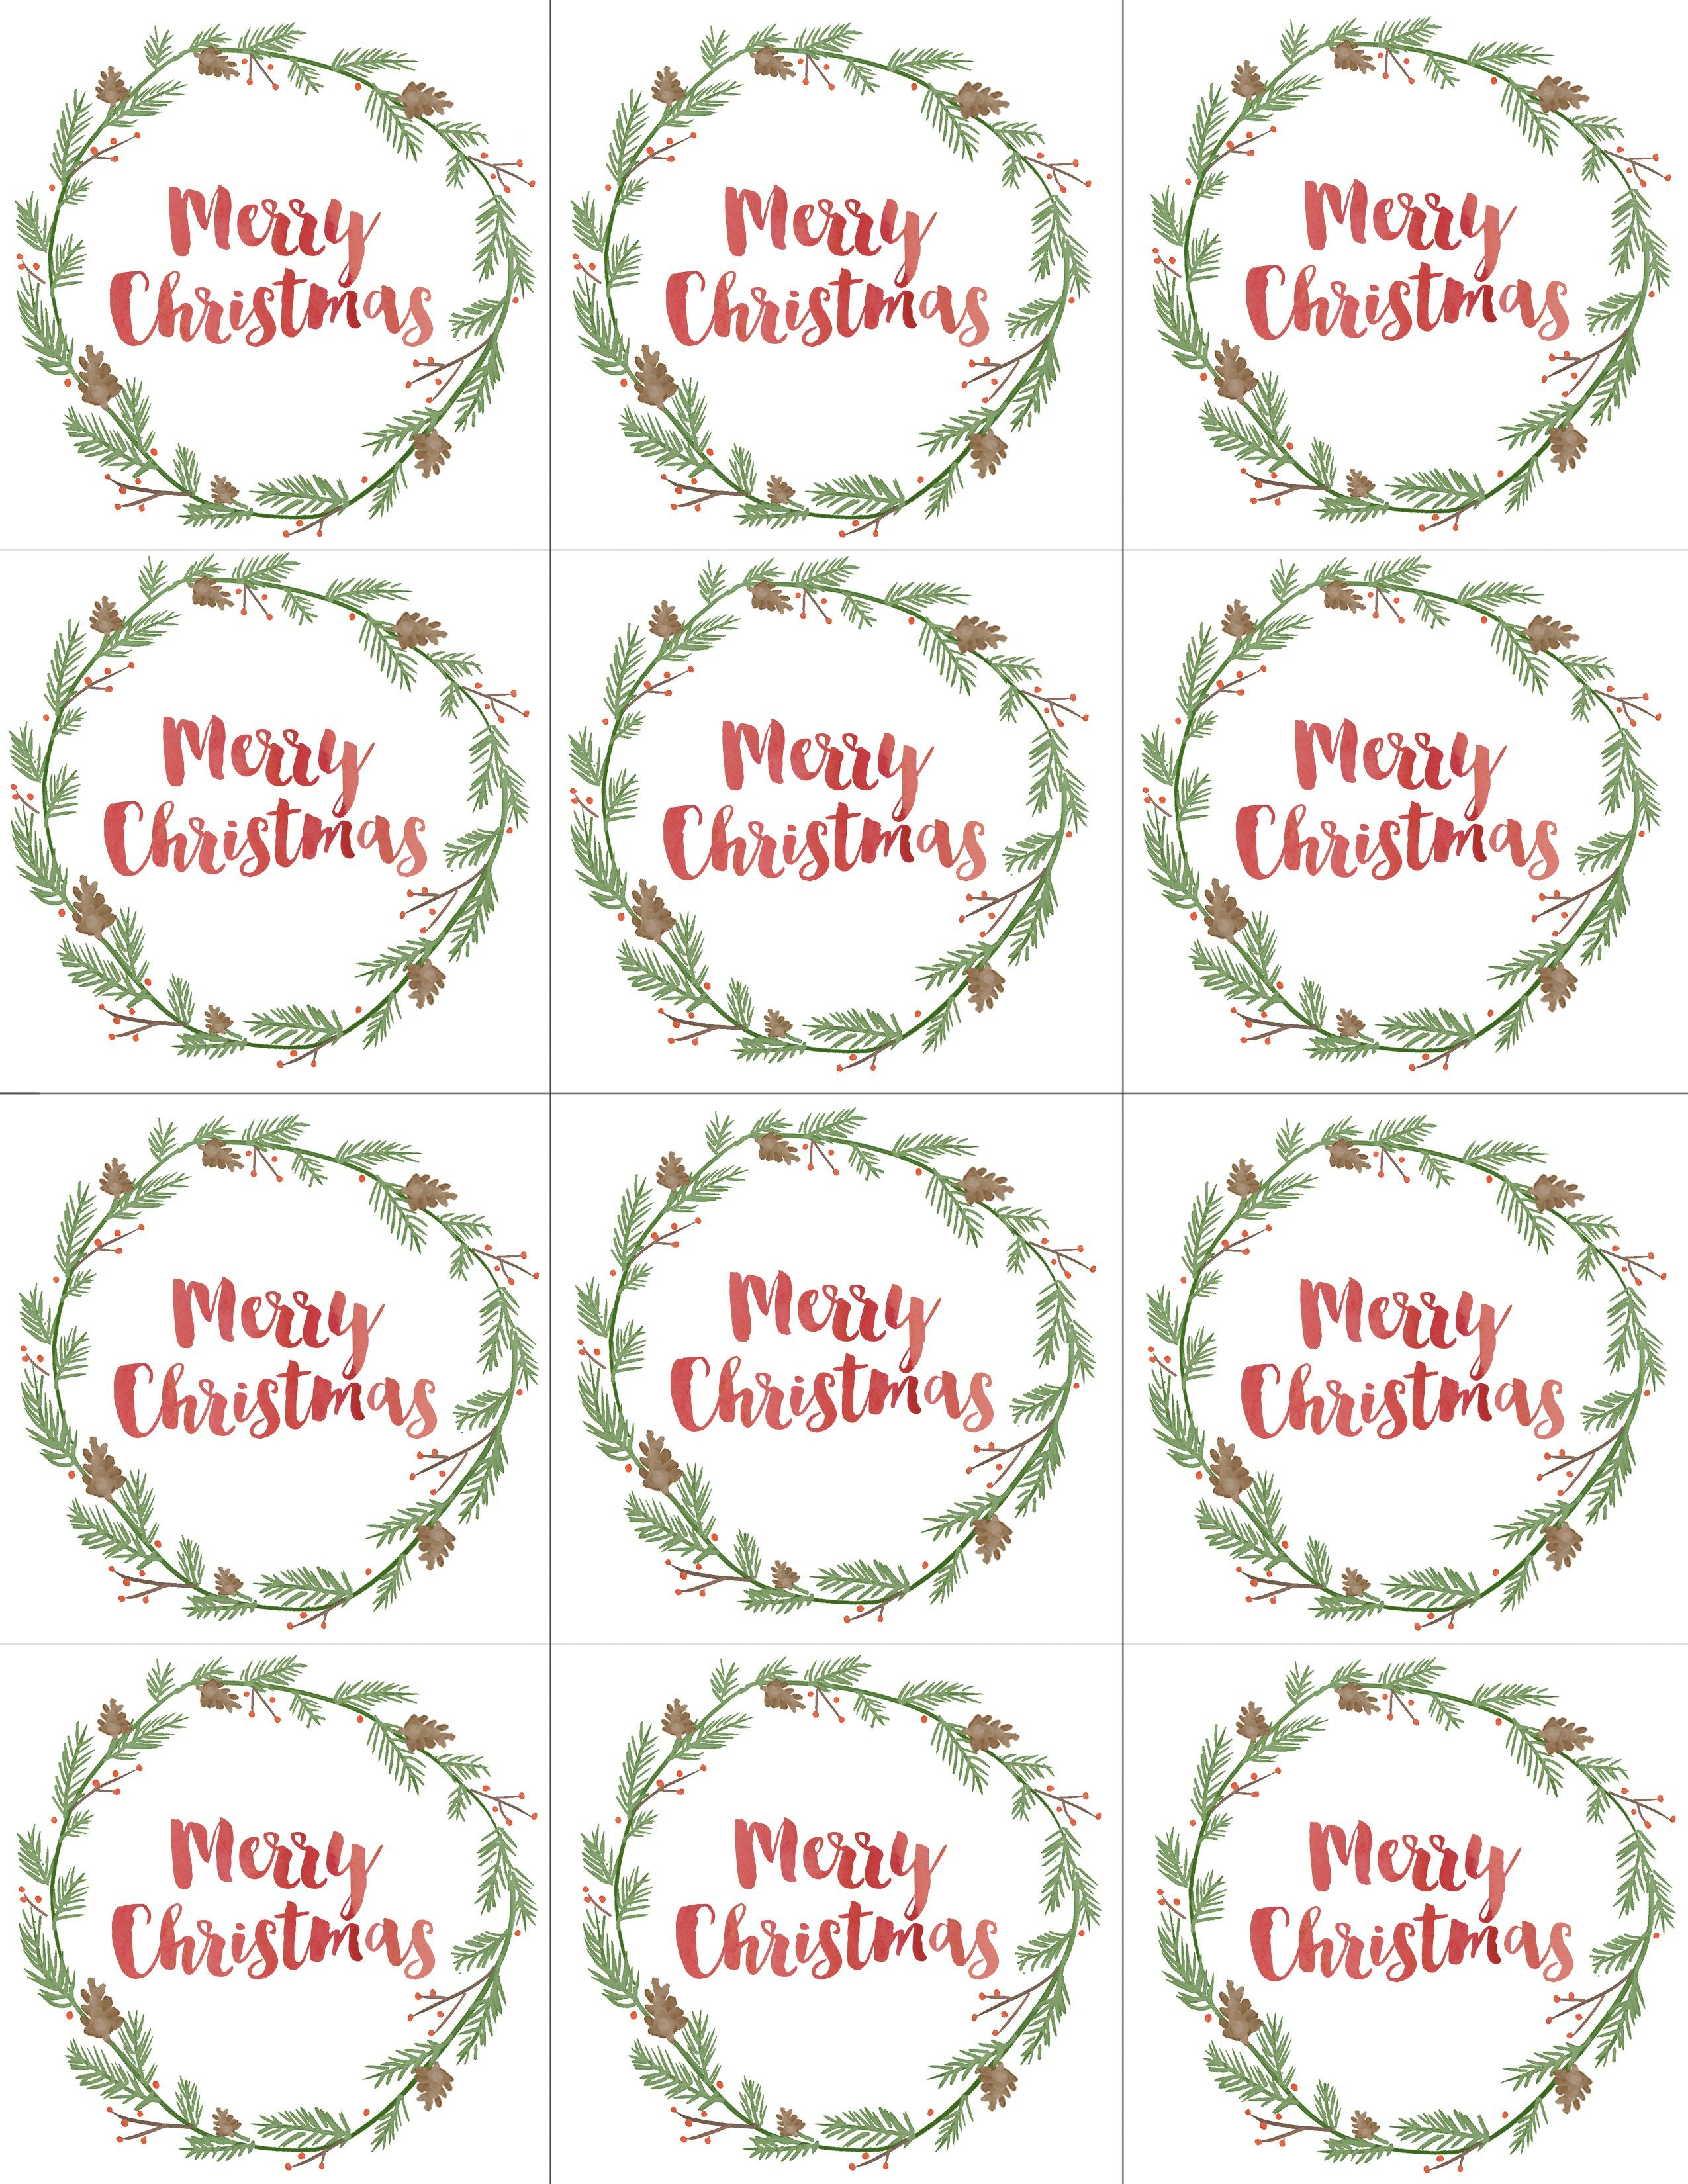 Hand Painted Gift Tags Free Printable   Christmas   Christmas Gift - Diy Gift Tags Free Printable